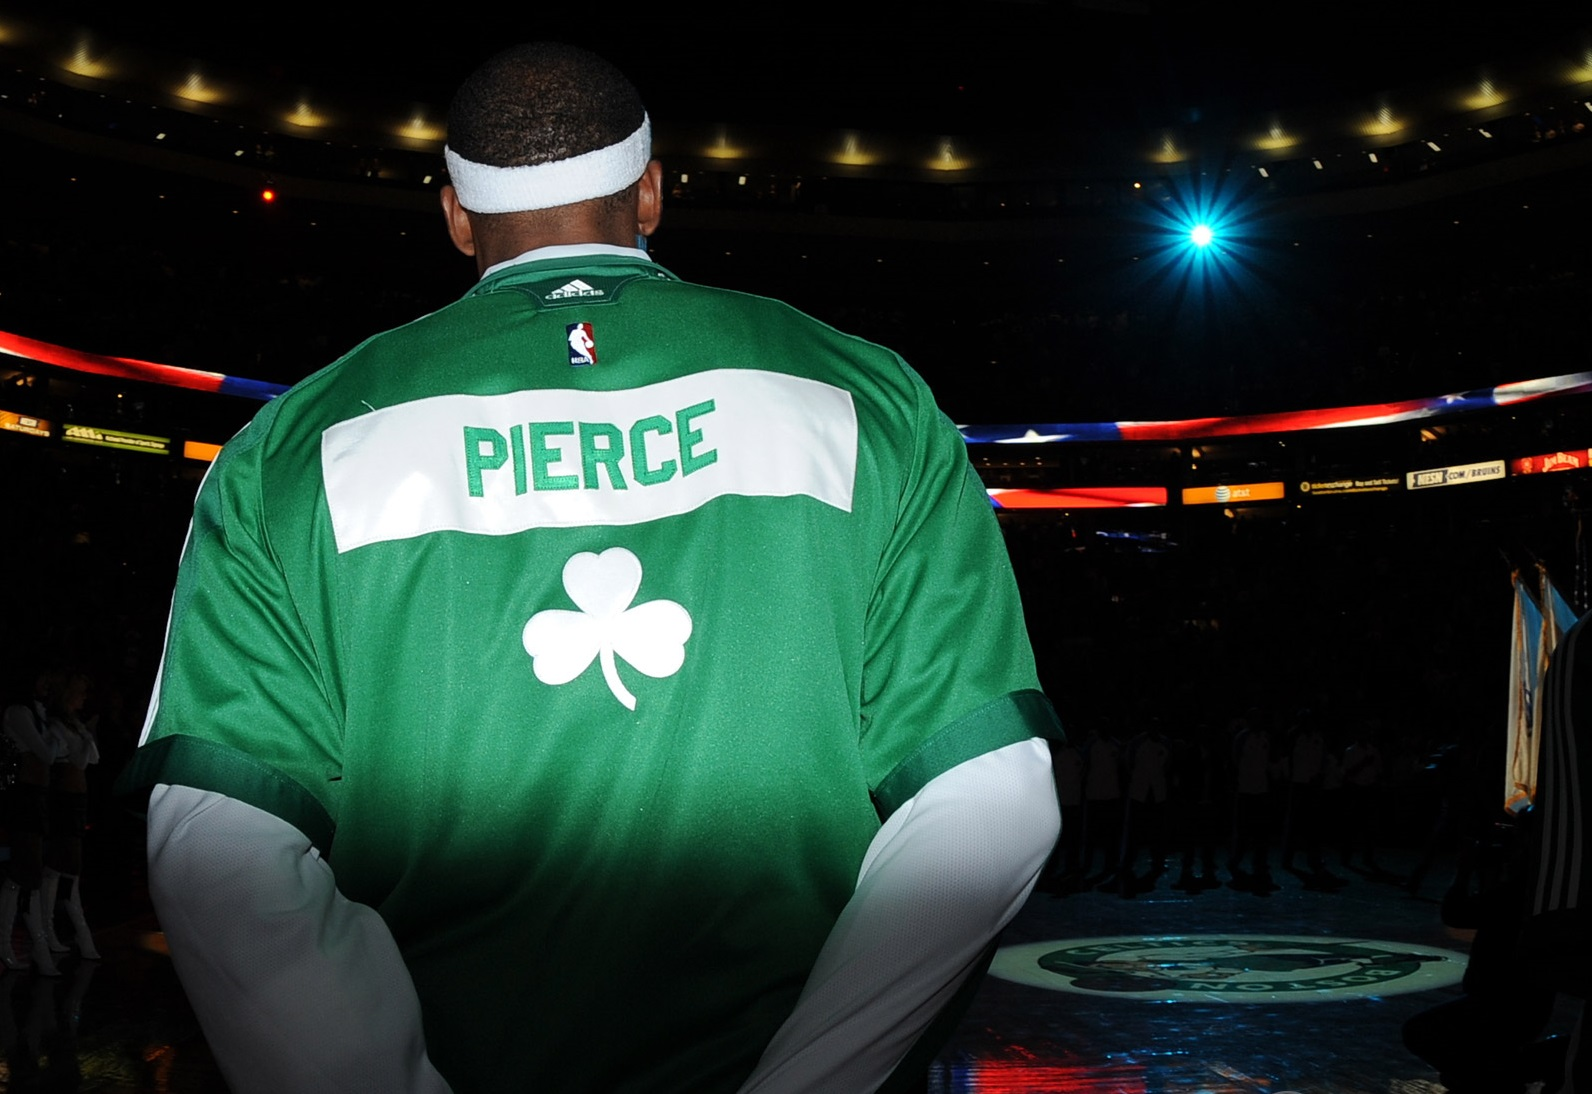 paul pierce, pierce, boston celtics, 34, retirada camiseta, nba, nba en español, boston celtics en español